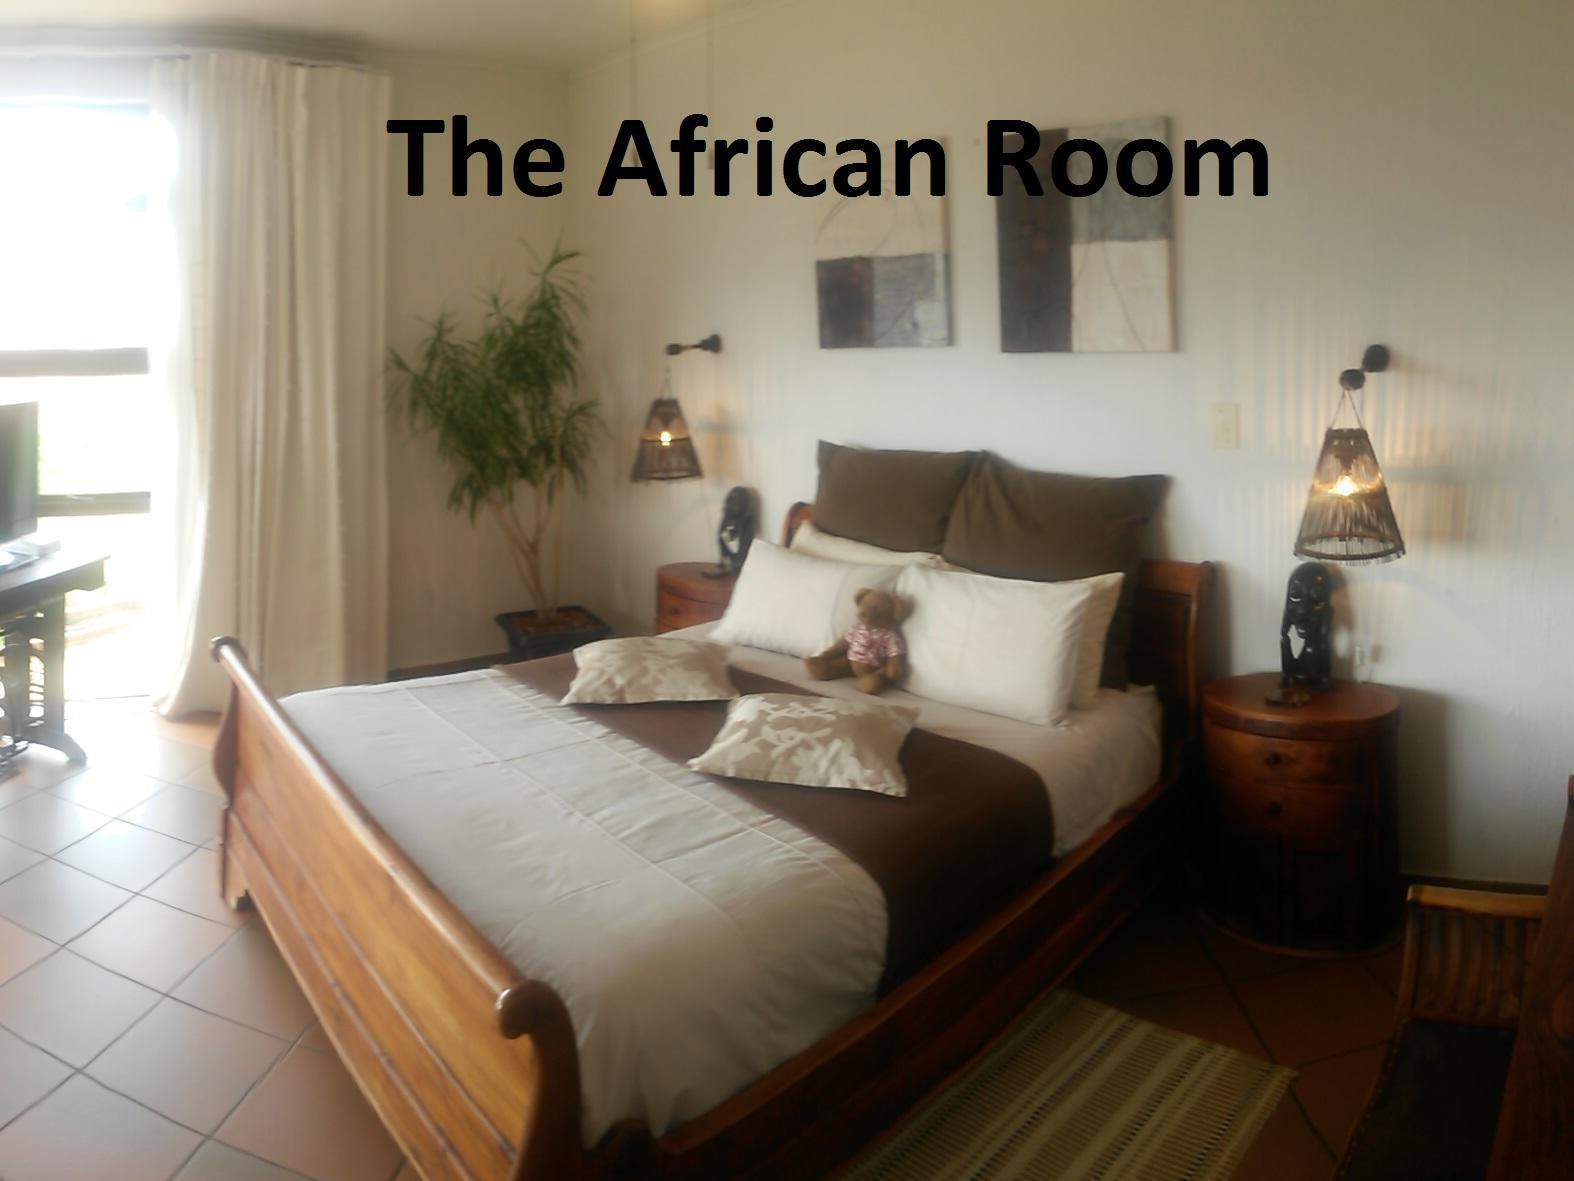 African Room /Rhino Room / Secret Room